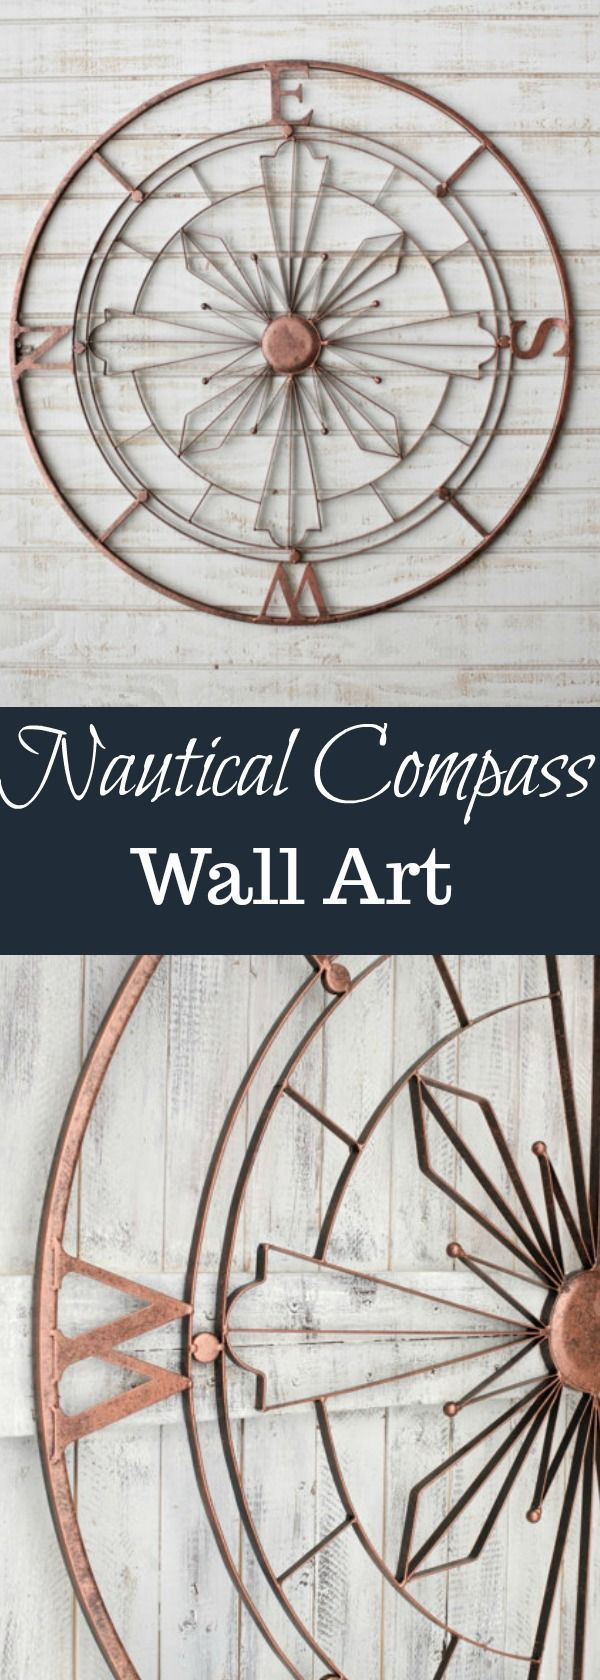 25 unique nautical compass ideas on pinterest compass rose nautical compass metal wall art rustic wall decor nautical wall decor metal wall amipublicfo Gallery